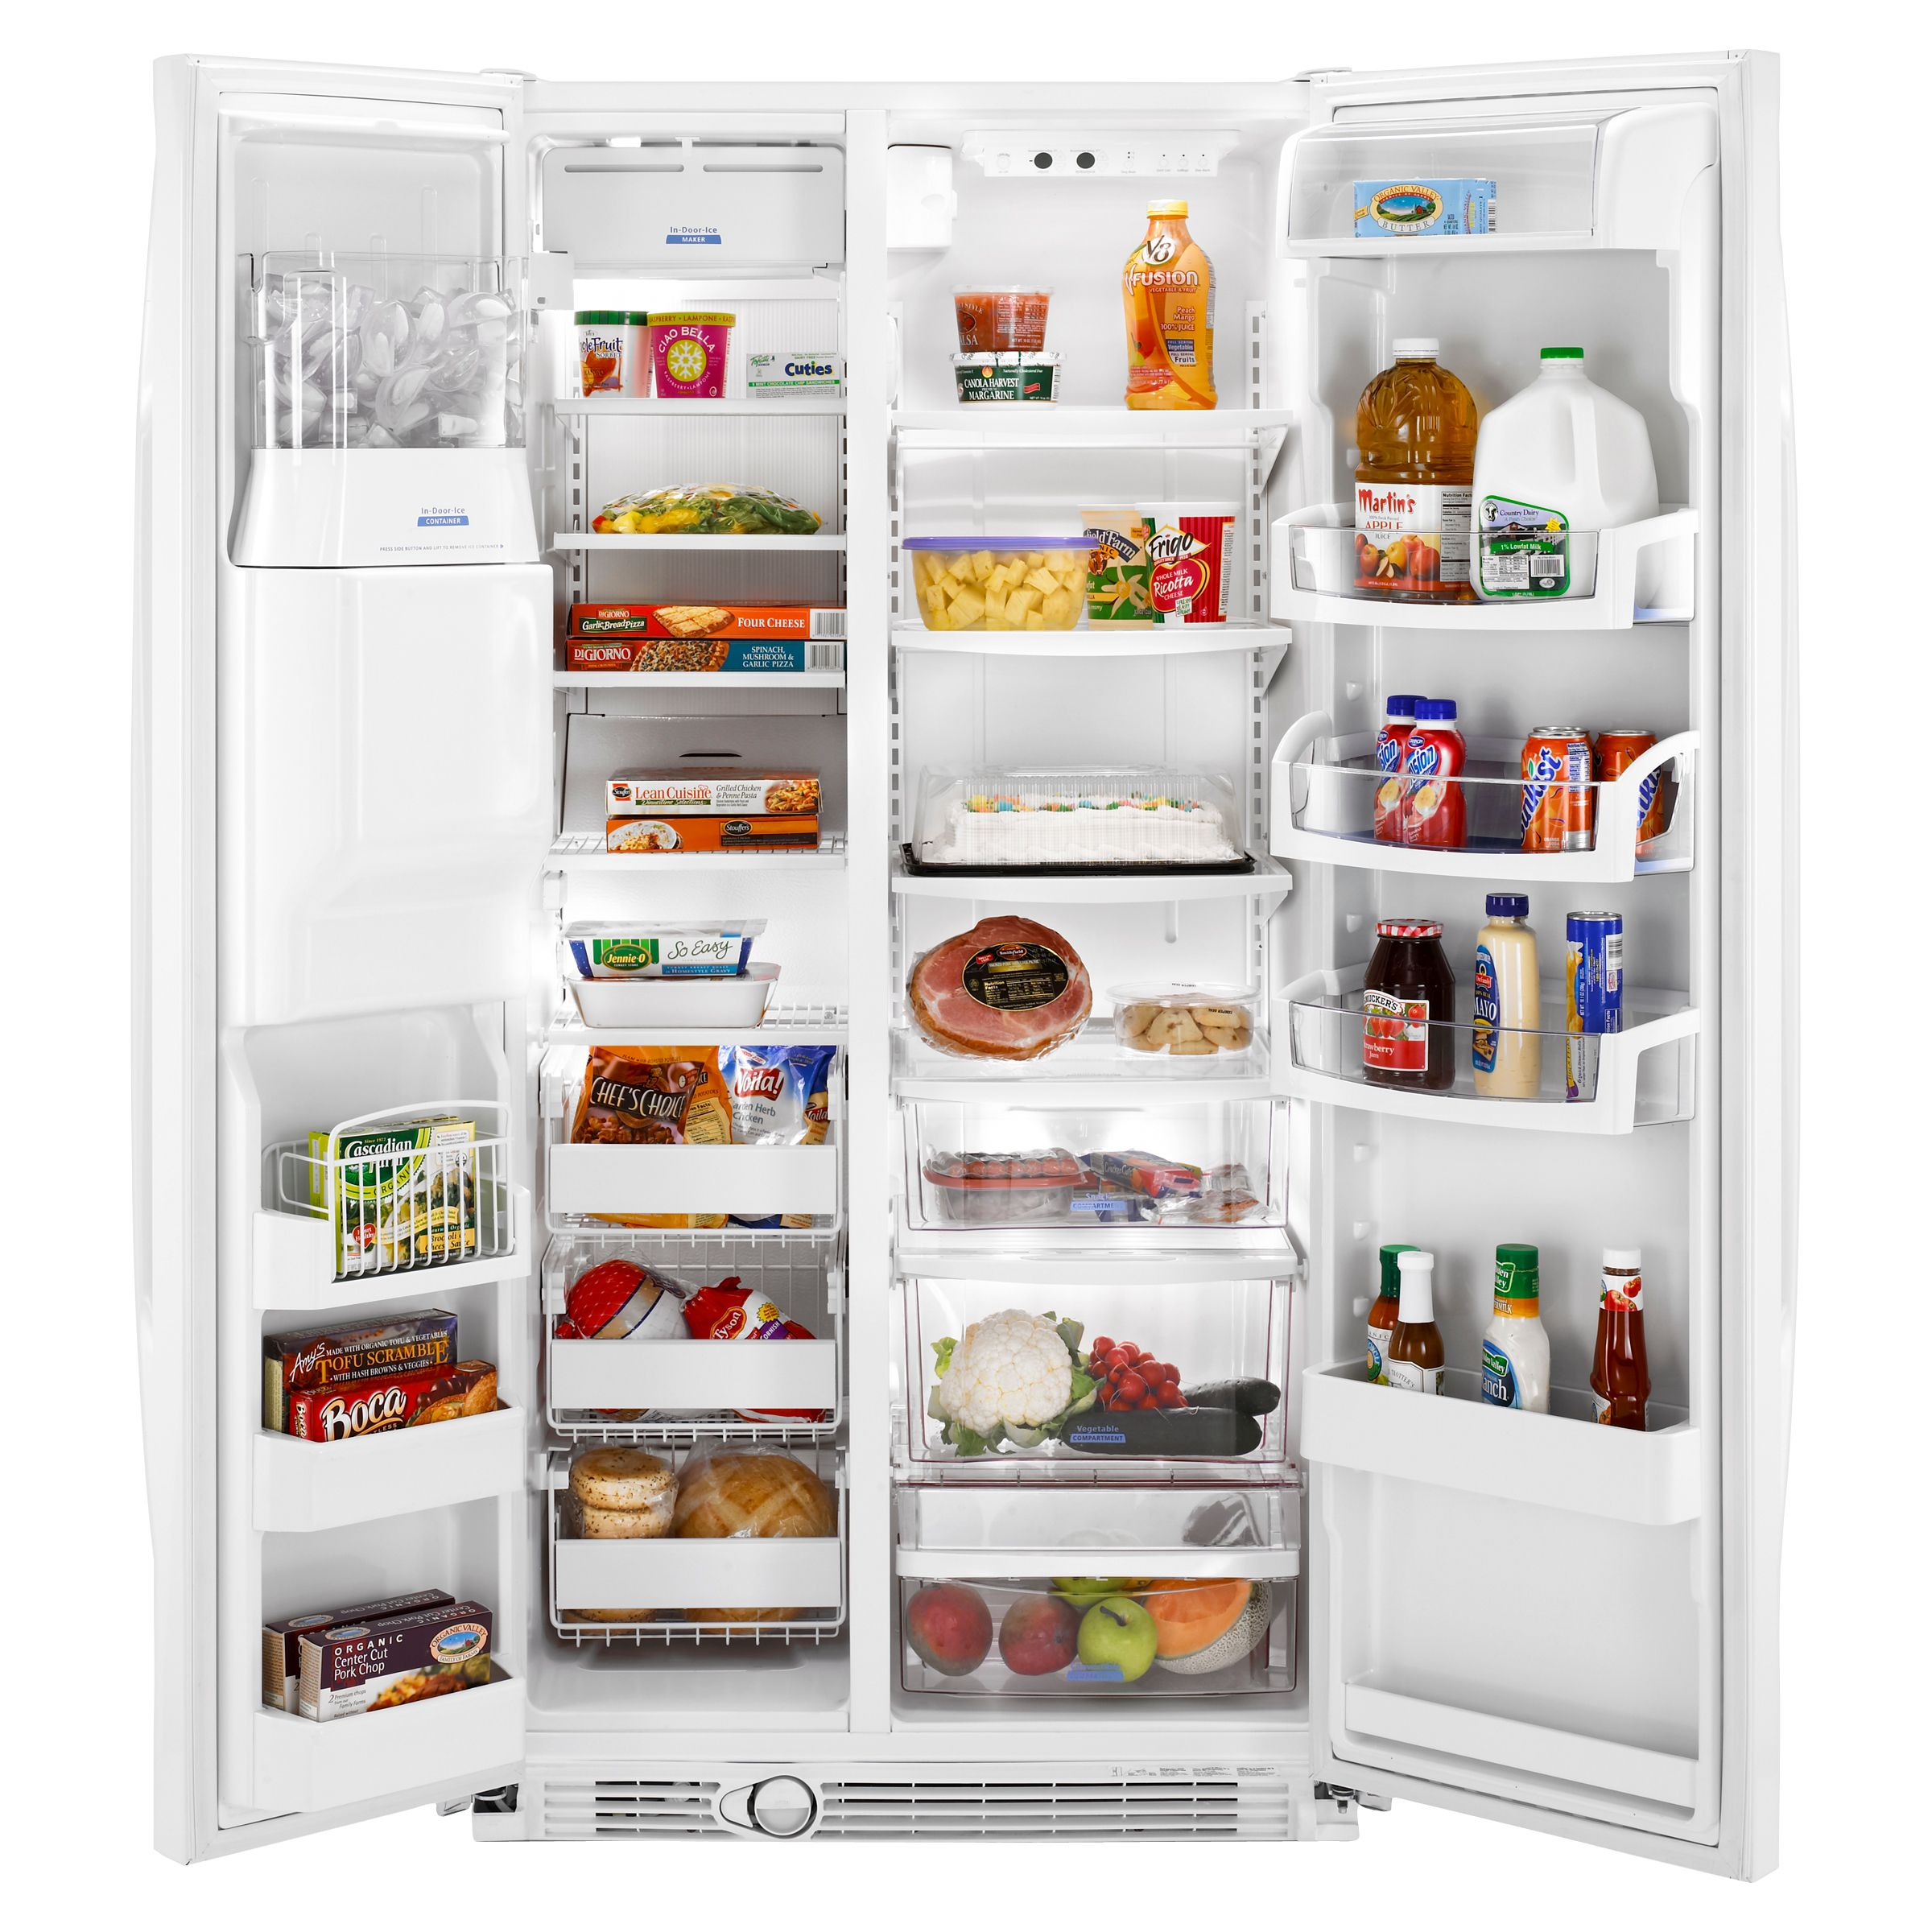 Whirlpool 24.5 cu. ft. Side-by-Side Refrigerator w/ Fast Fill Technology